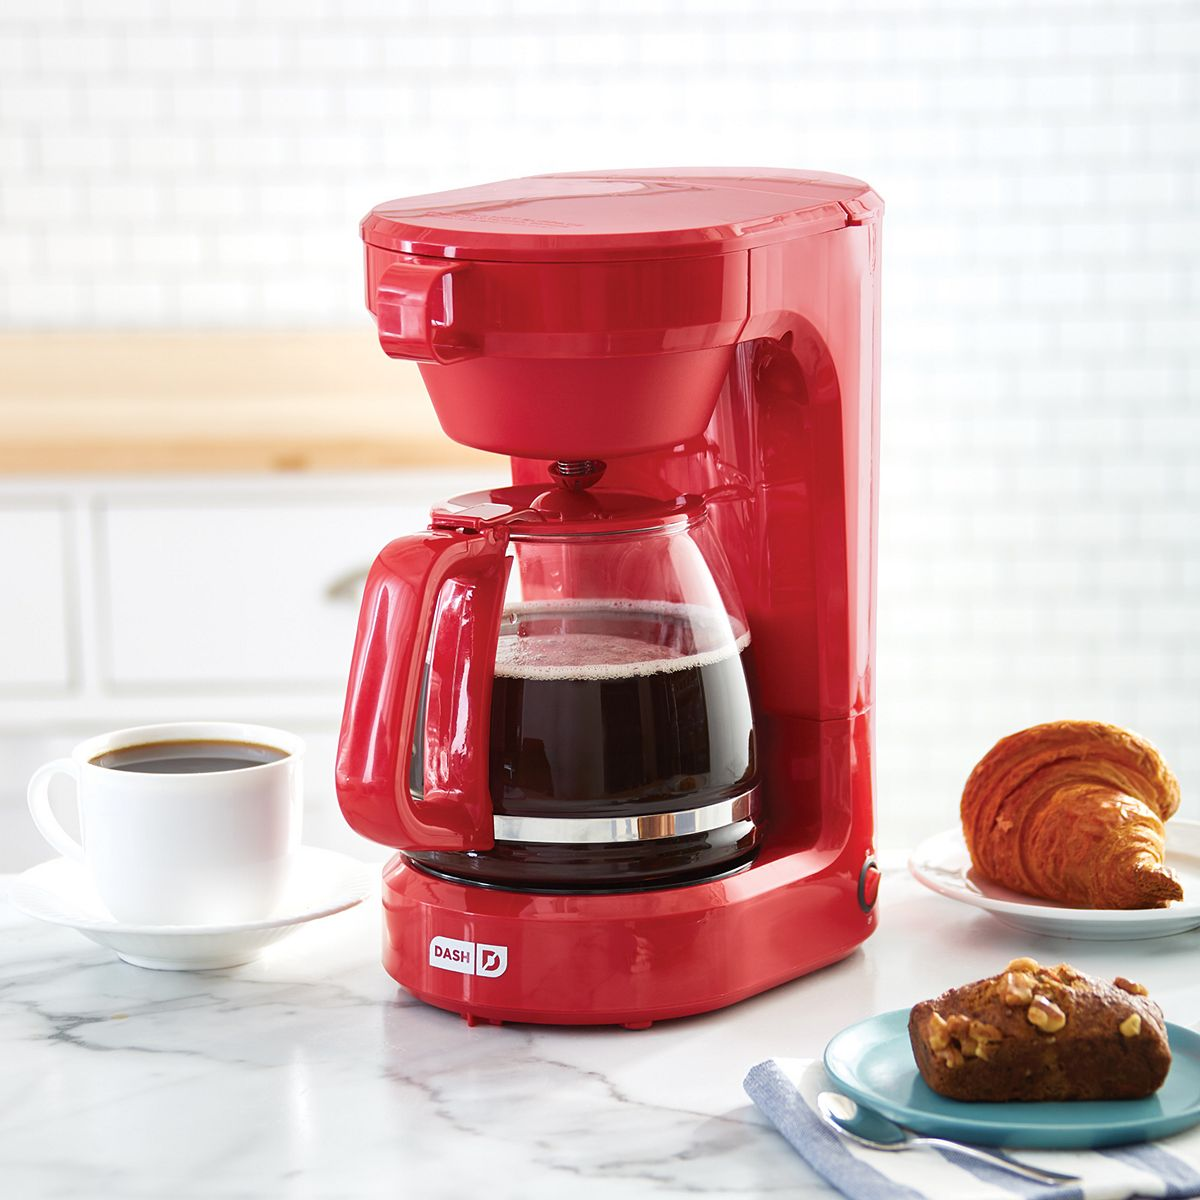 Dash 12-Cup Express Coffee Maker Red FqXyS